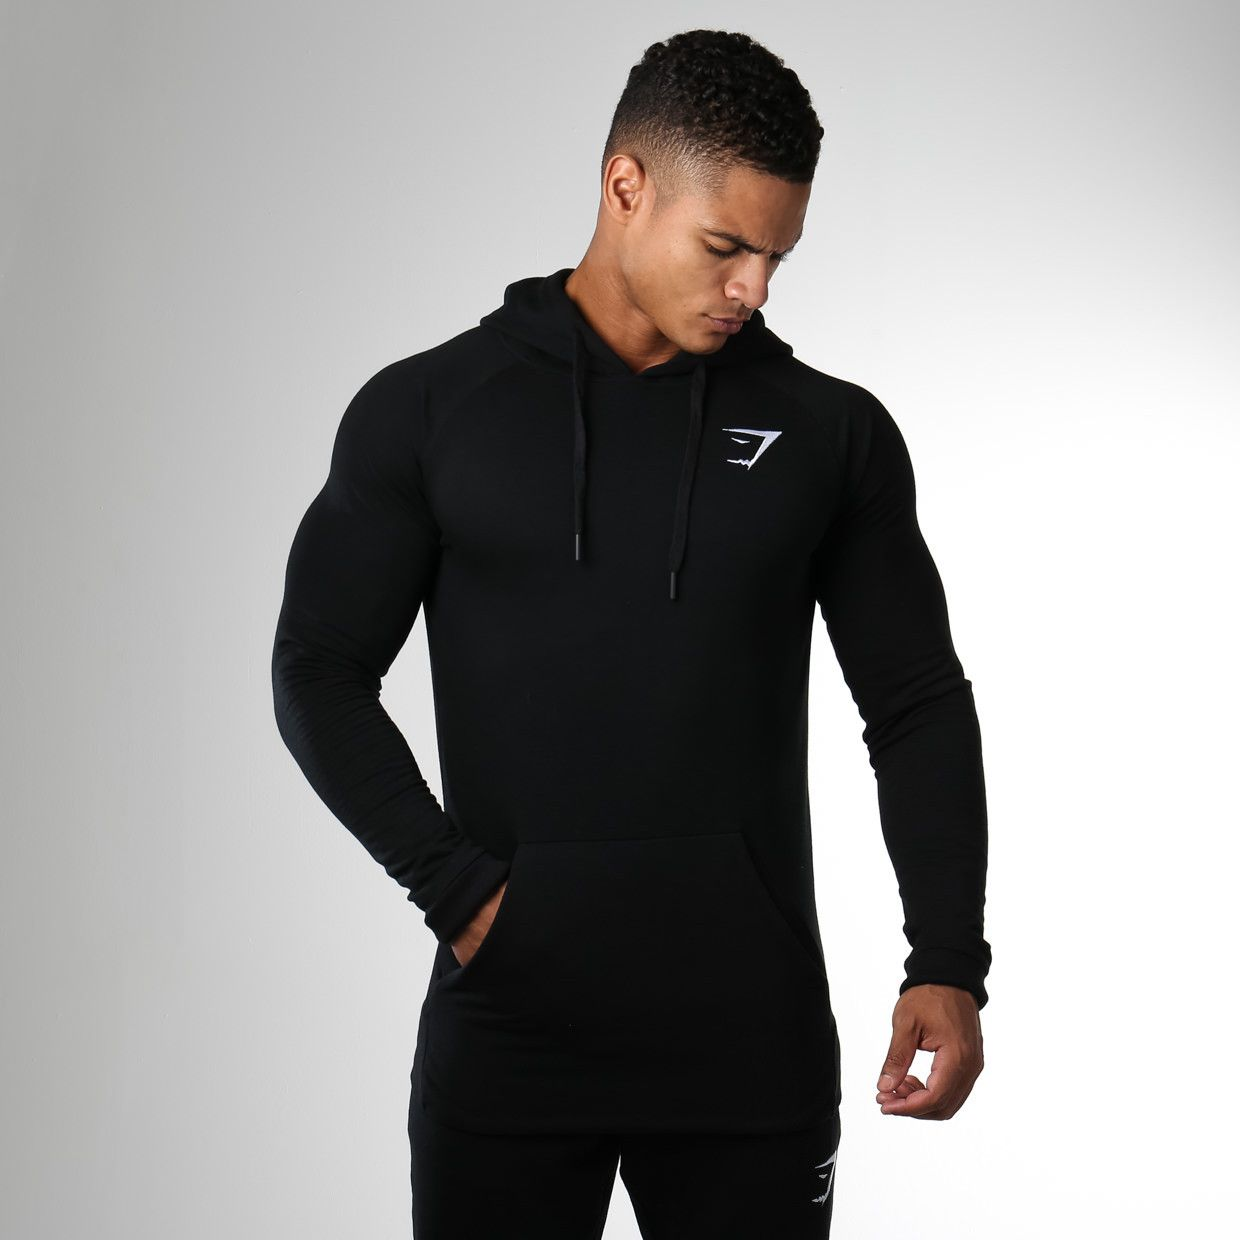 418e8069ba14b Gymshark Ark Pullover - Black The Ark Men s Pullover is the latest addition  to the Gymshark